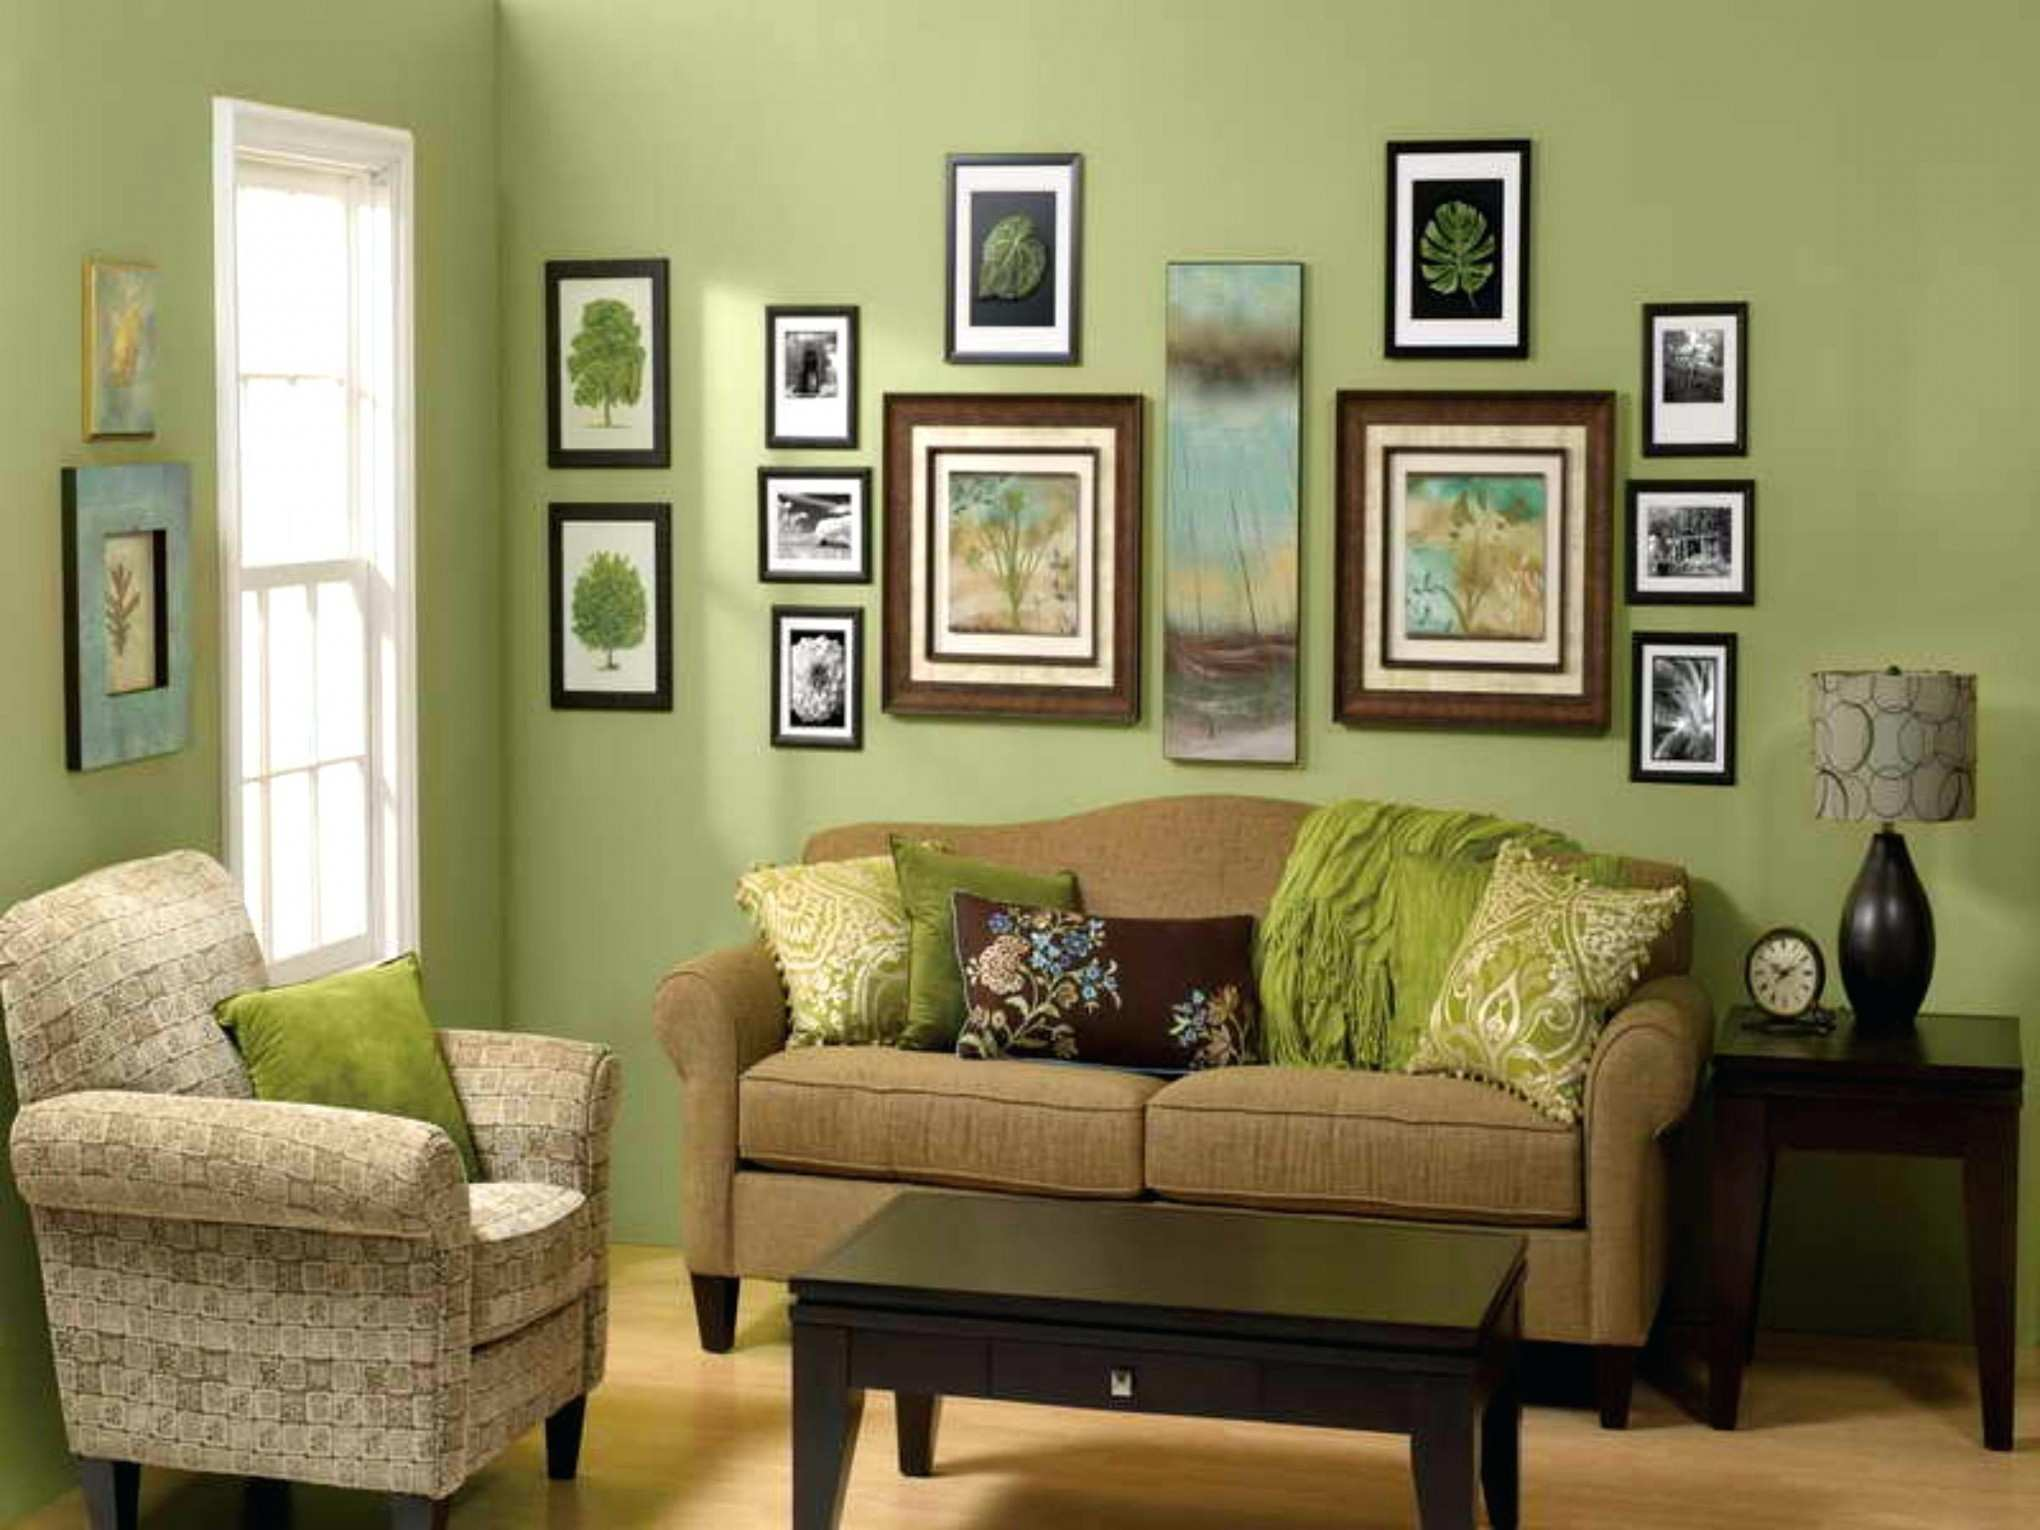 Decorative Wall Paintings for Living Room Elegant Fresh Wall Decals